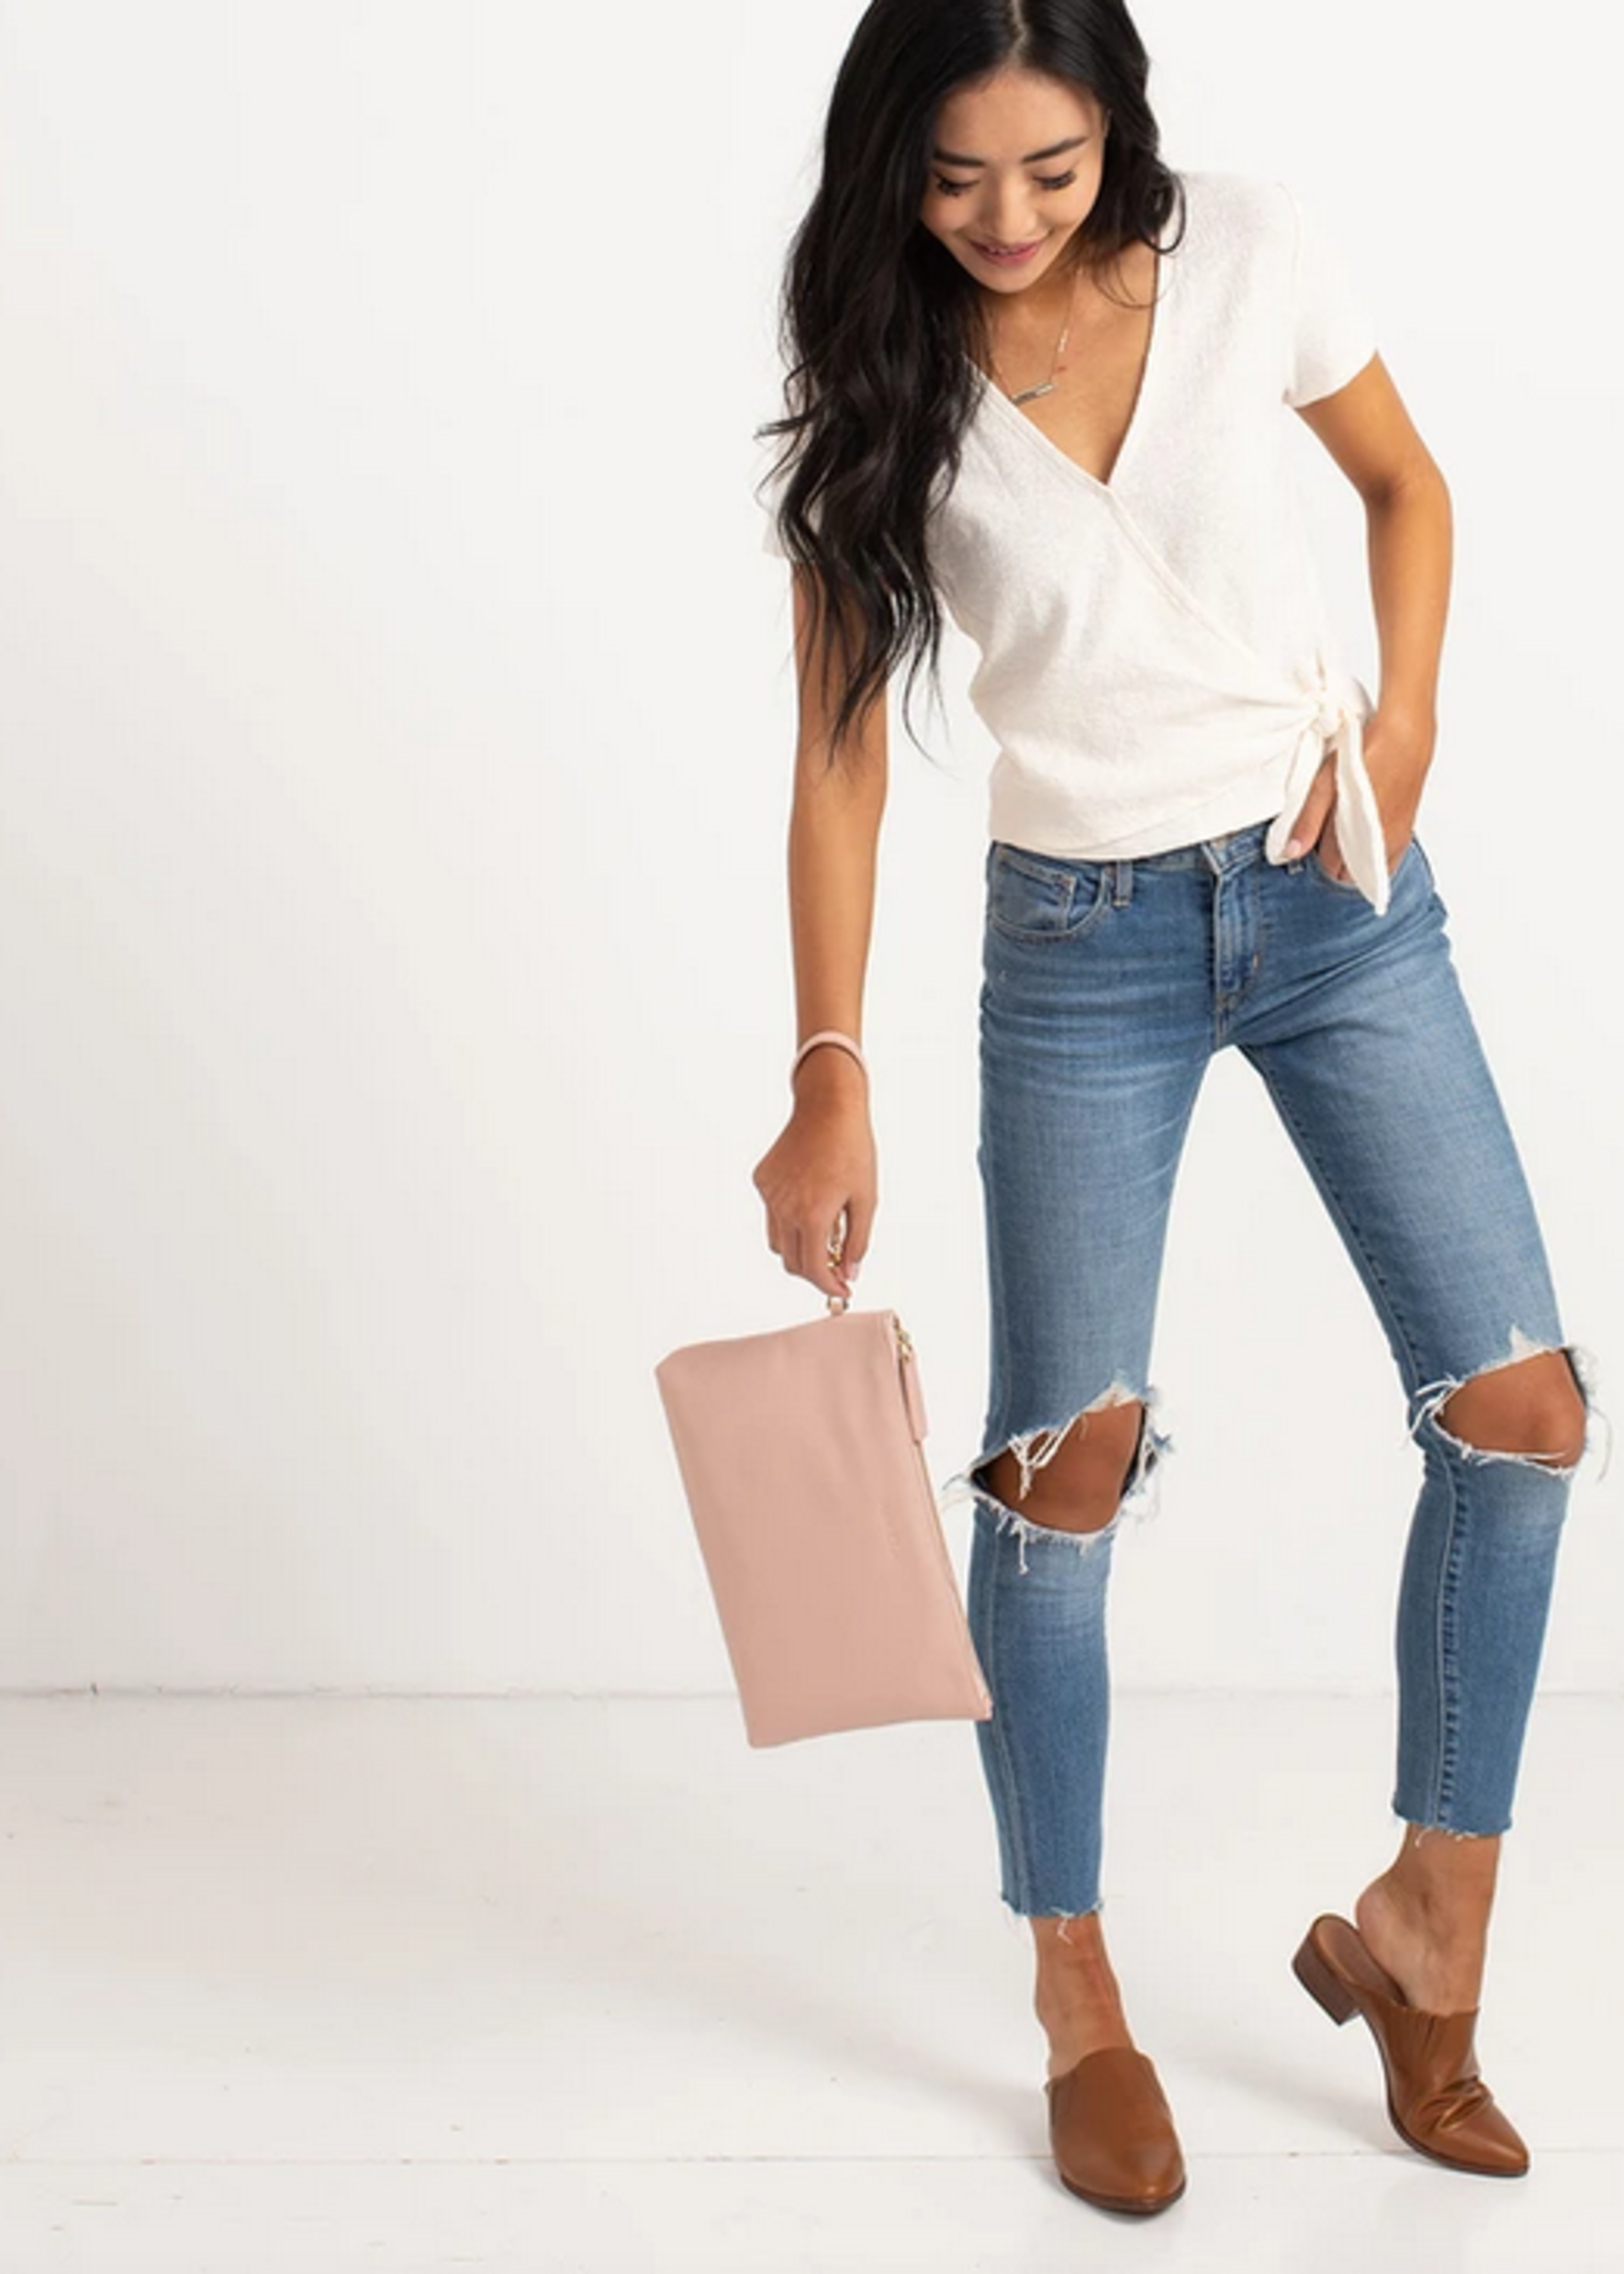 Elitaire Petite The Changing Clutch - Blush